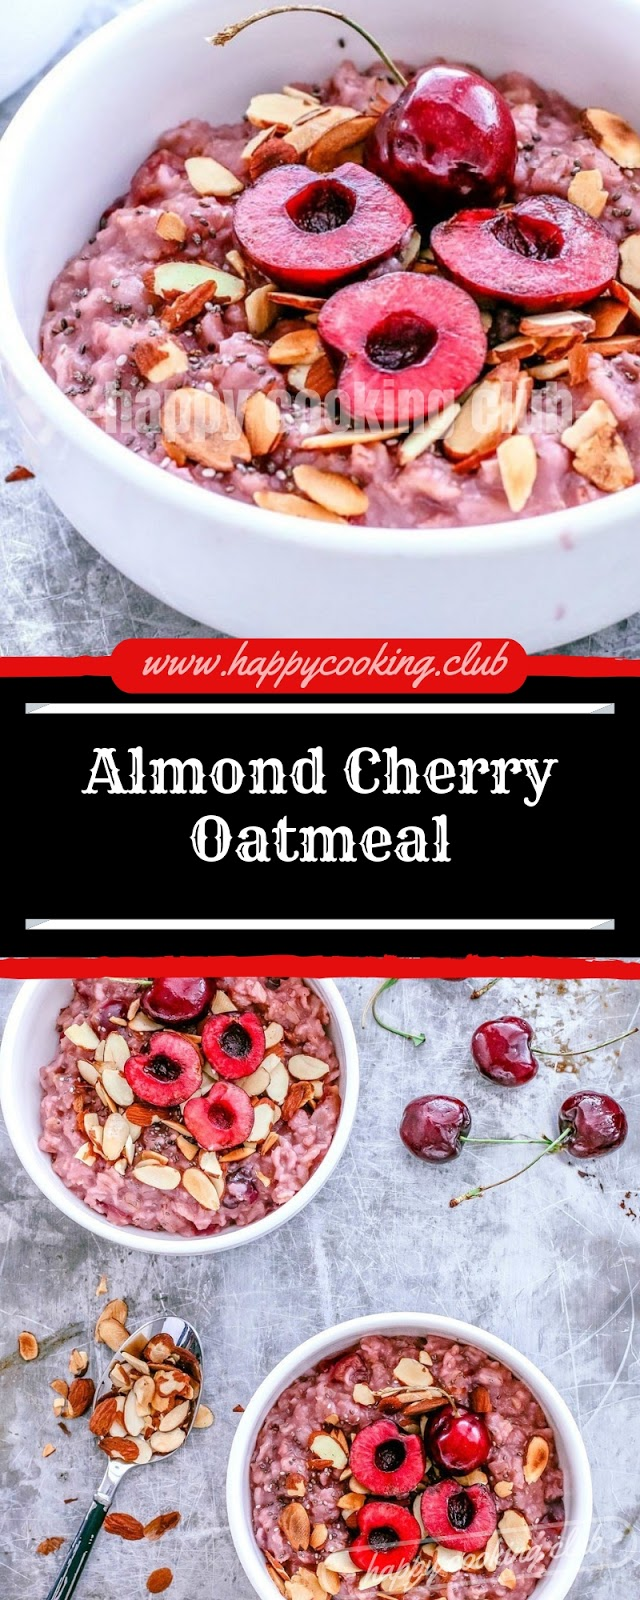 Almond Cherry Oatmeal